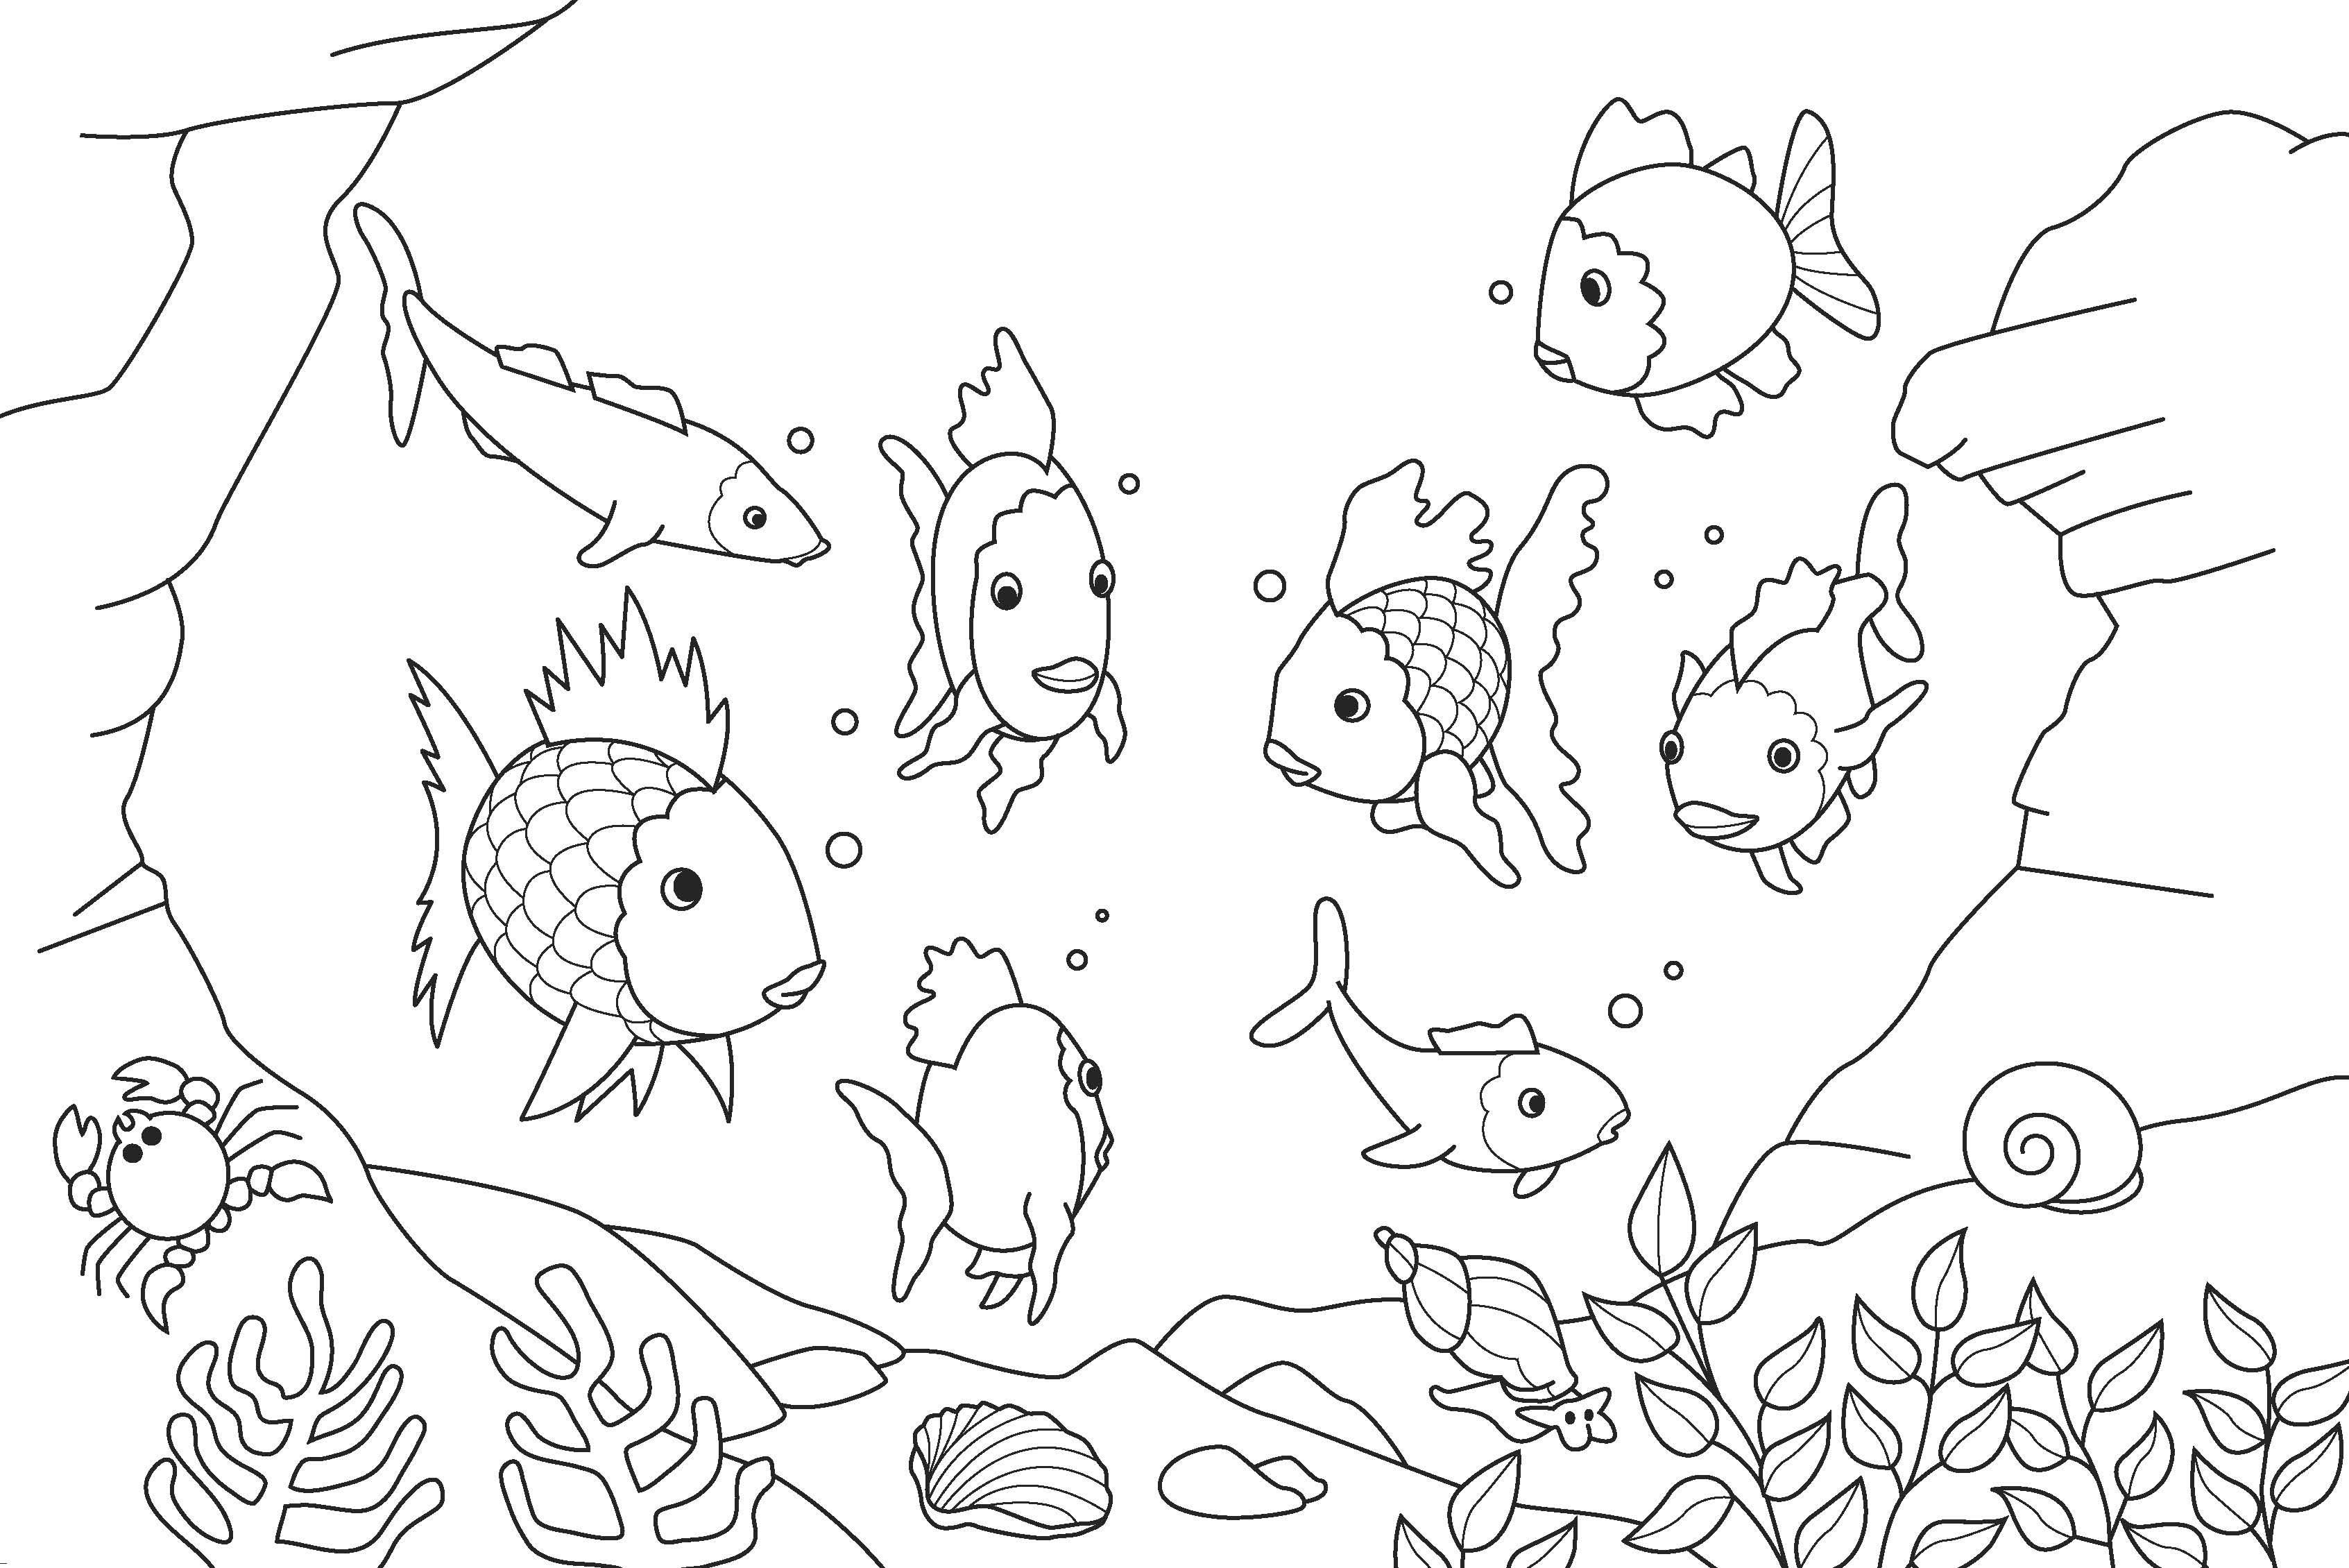 fish coloring pages kids - Coloring Page Of Fish